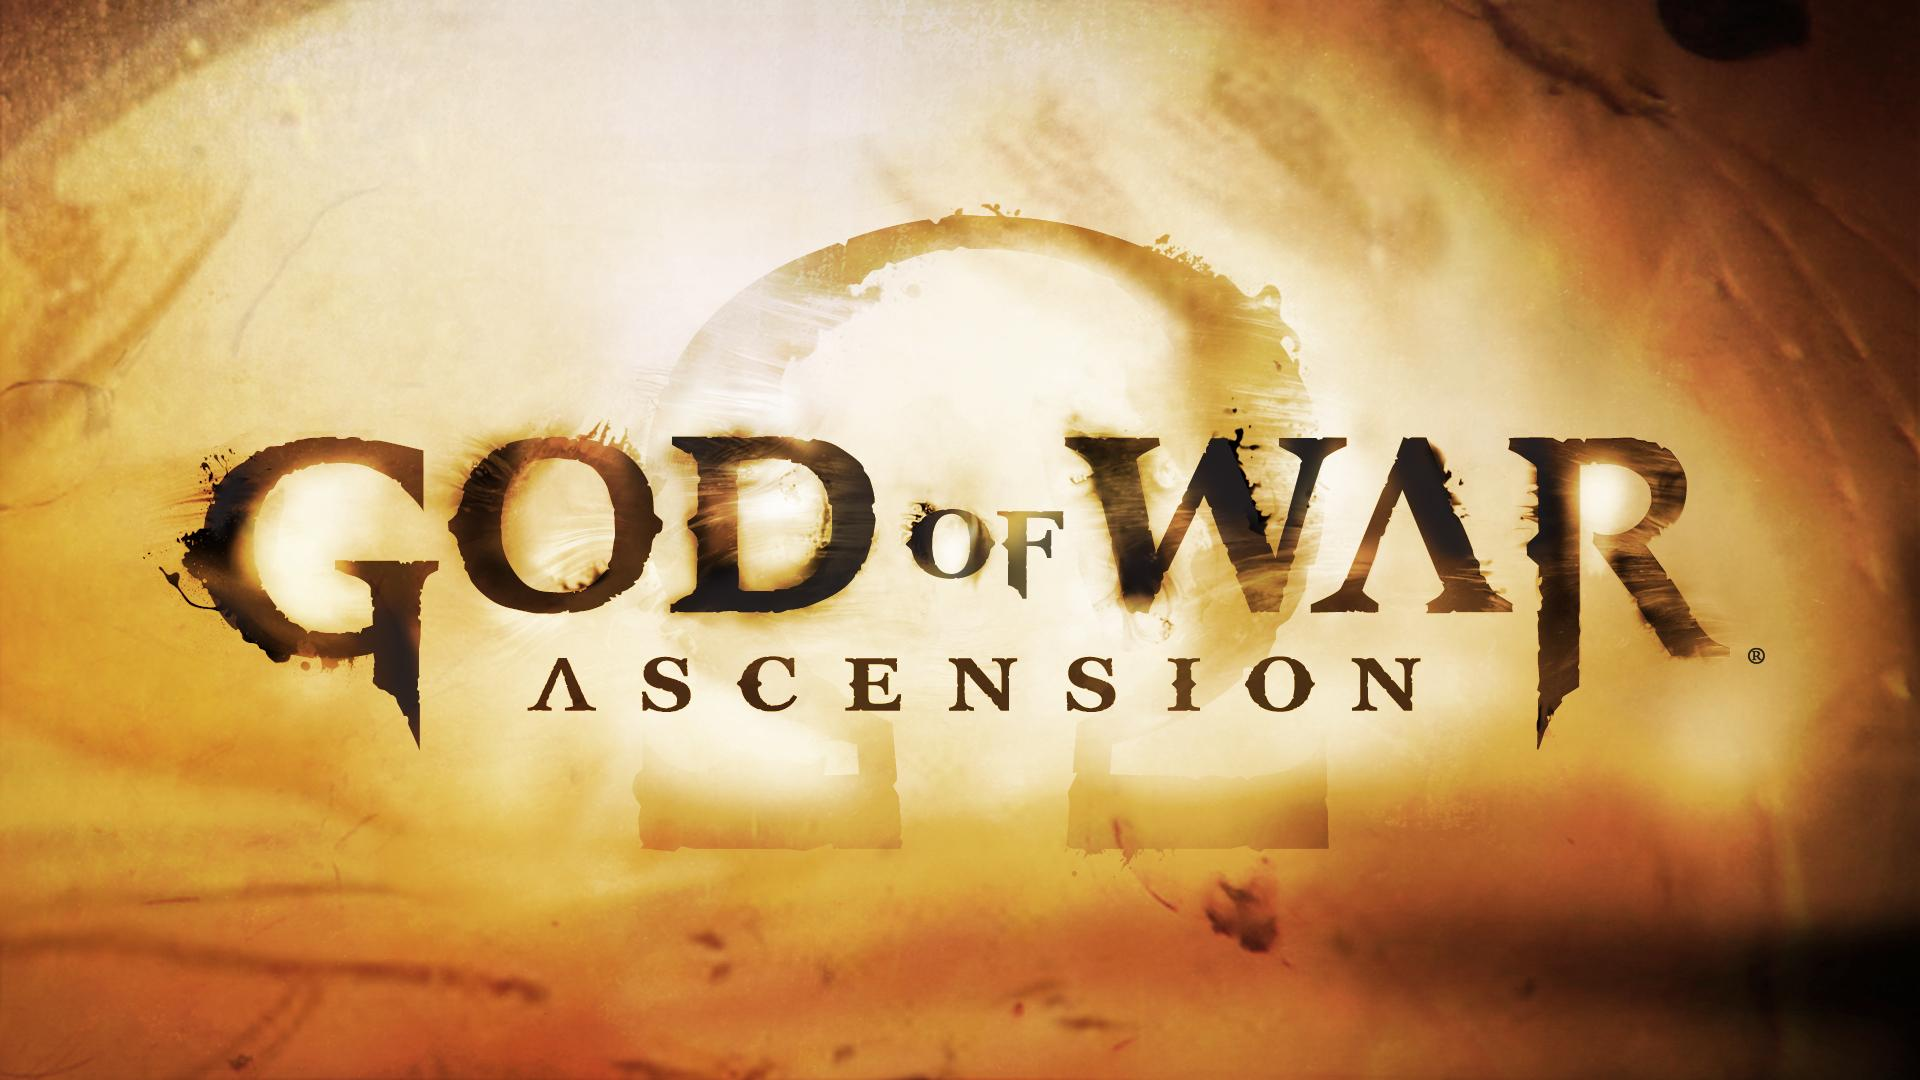 réservation god of war ascension